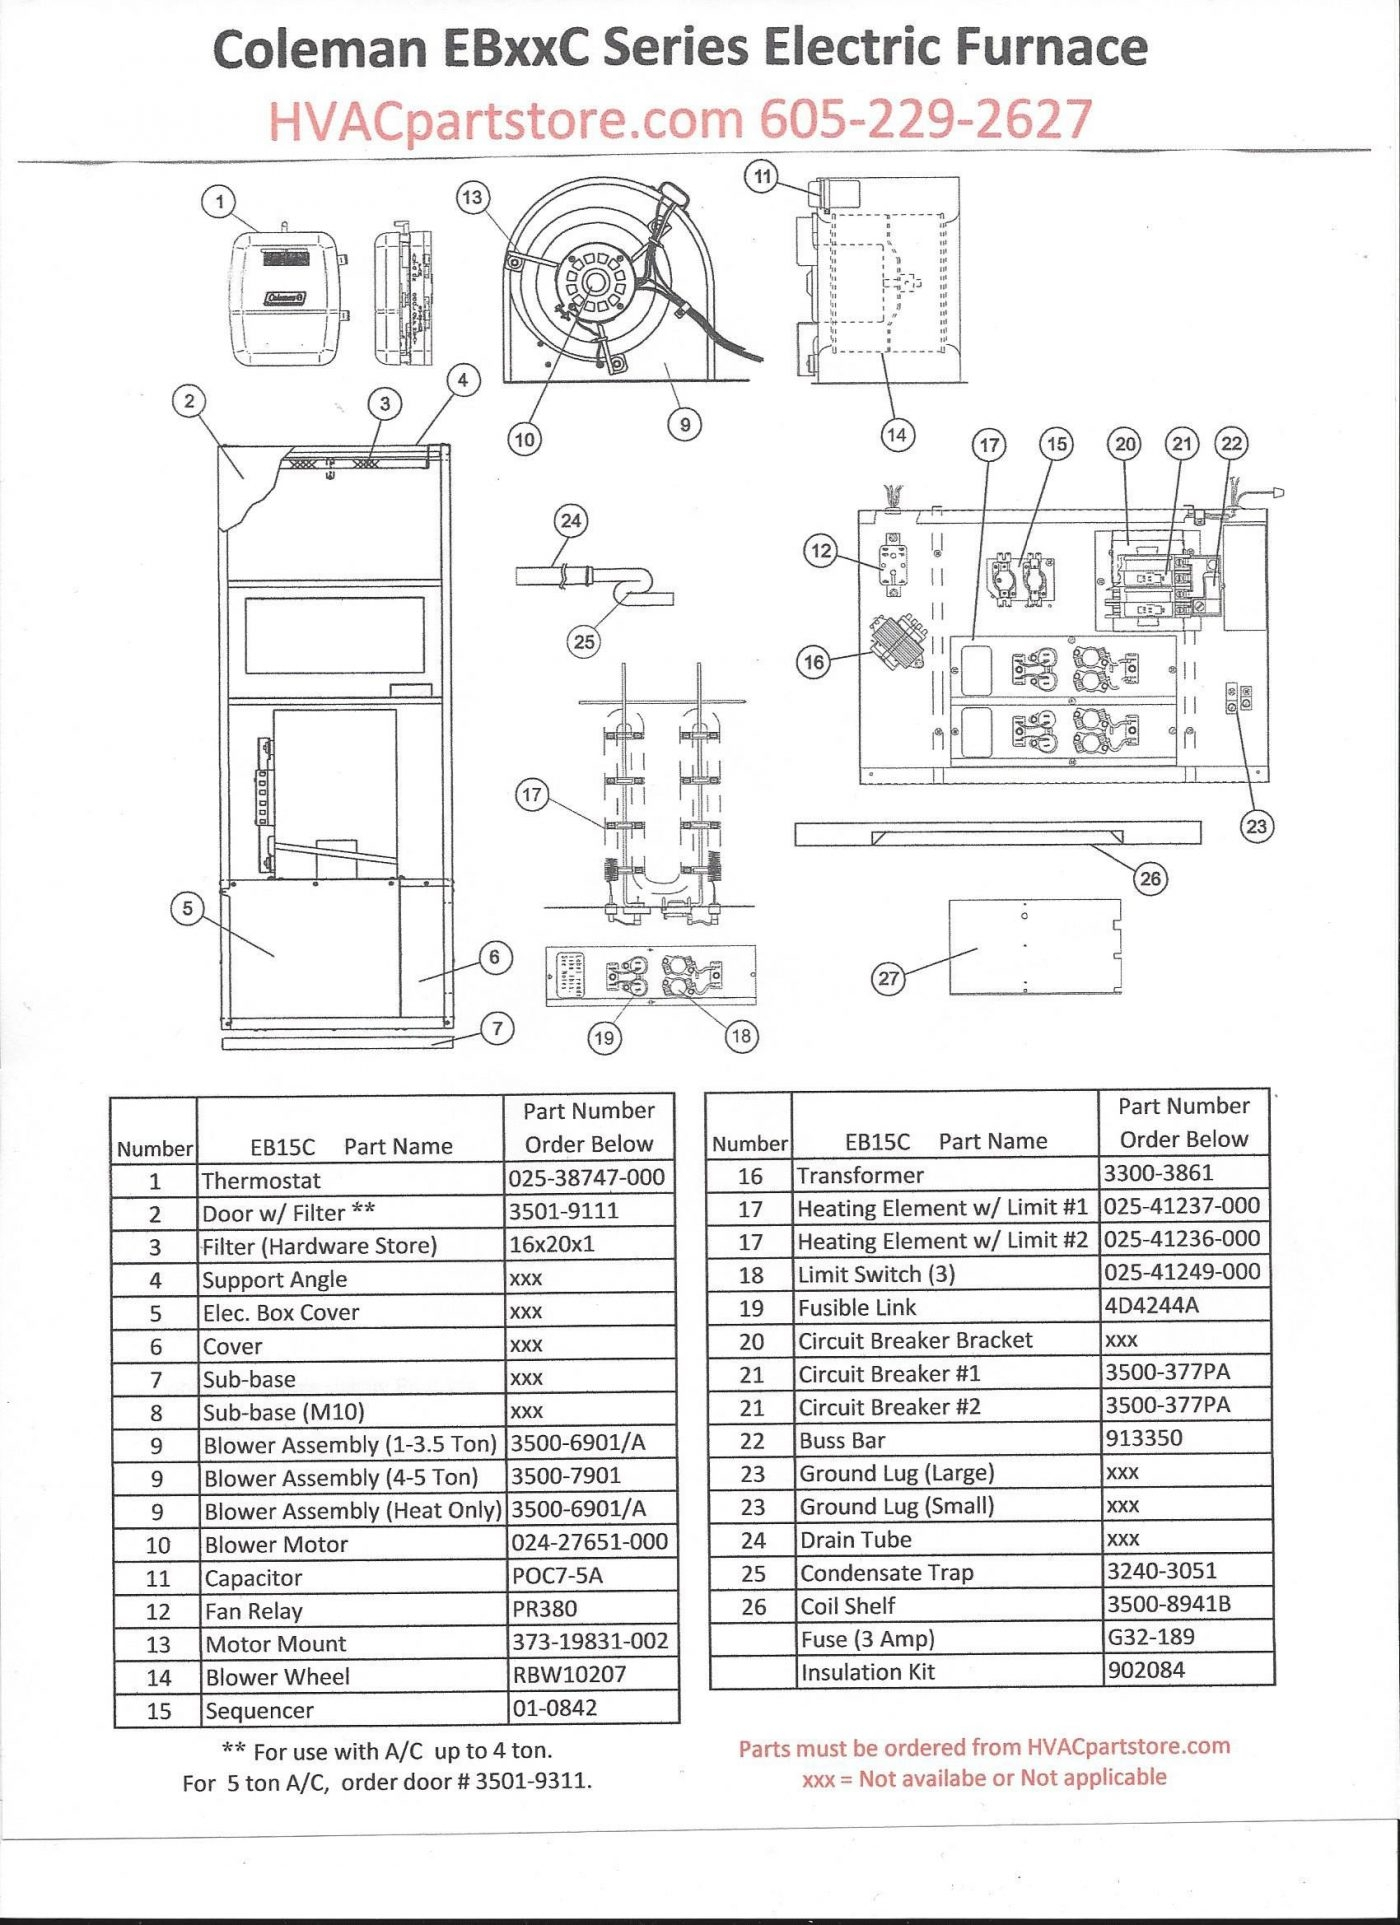 tempstar heat pump wiring diagram | free wiring diagram coleman furnace thermostat wiring diagram free download coleman central ac wiring diagram free download